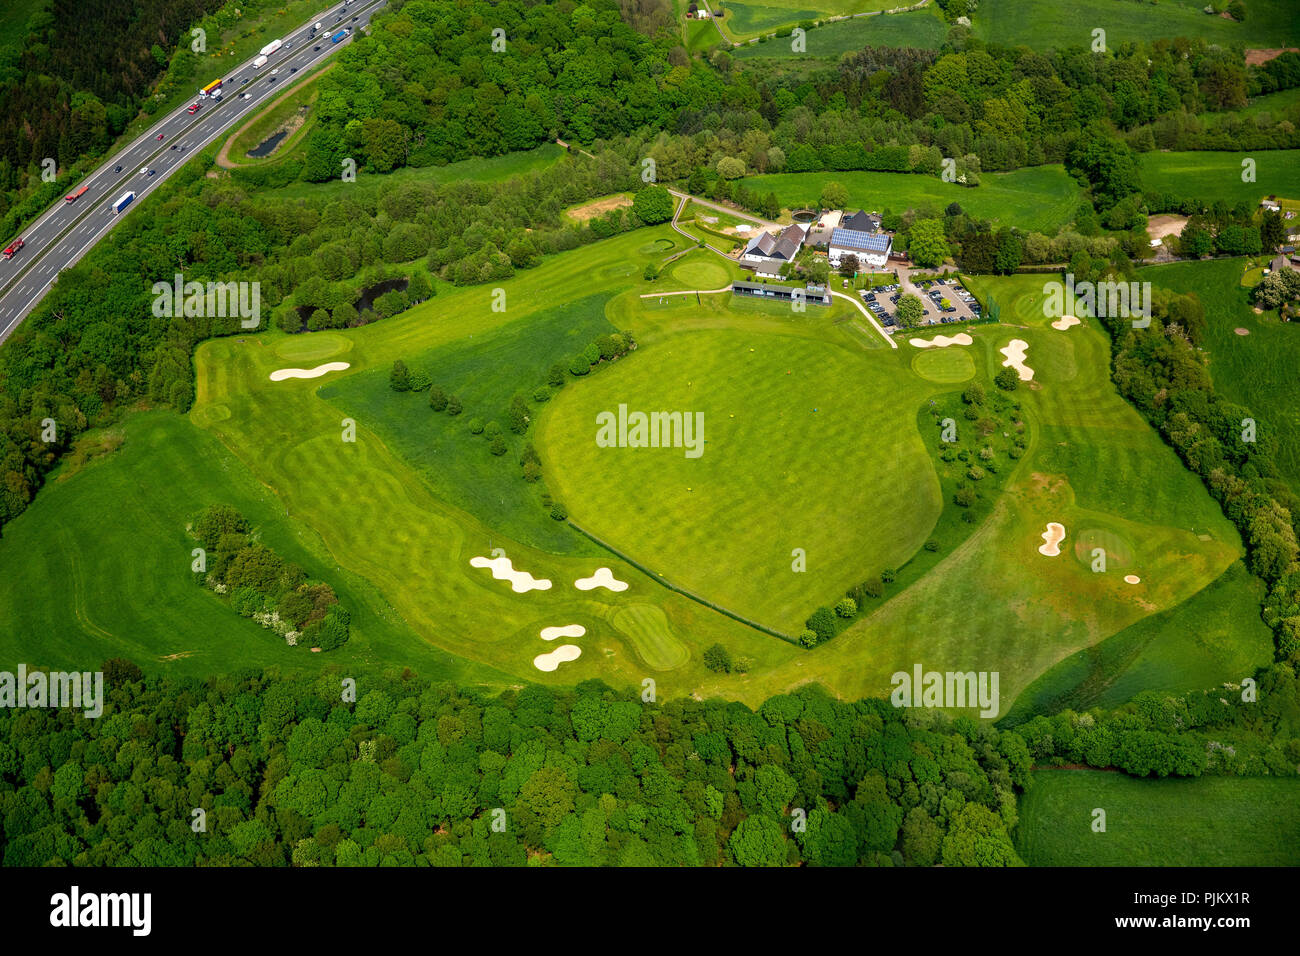 Golfclub Gut Berge Gevelsberg with driving range, bunker and clubhouse, parking lots, Gevelsberg, Ruhr area, North Rhine-Westphalia, Germany - Stock Image